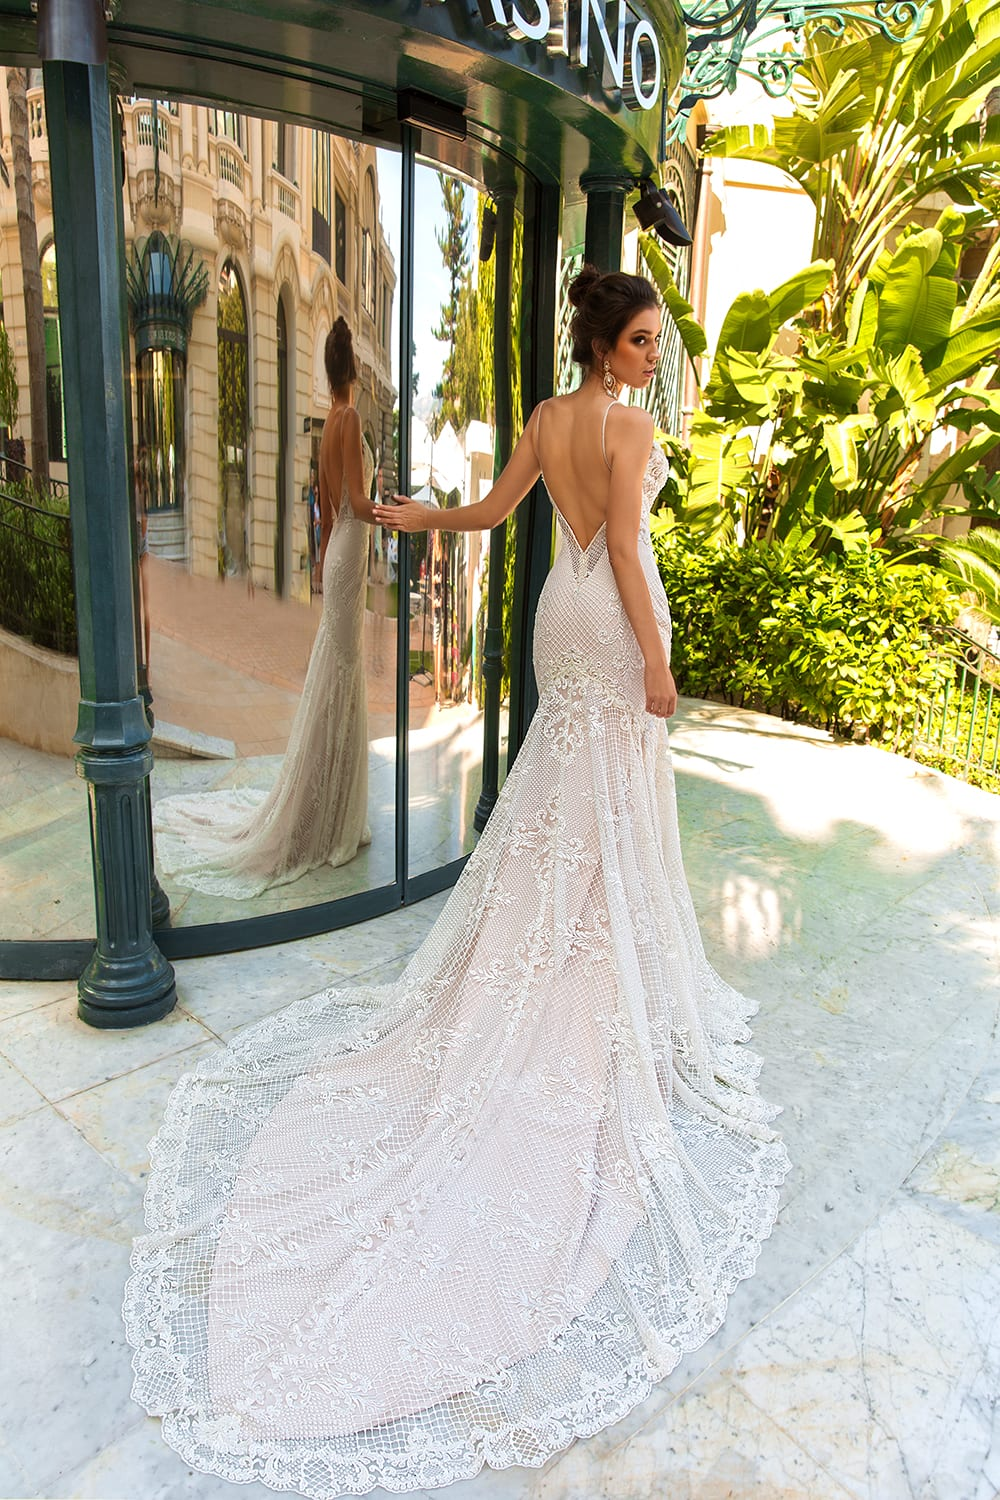 Backless Wedding Gown Ideas For Women